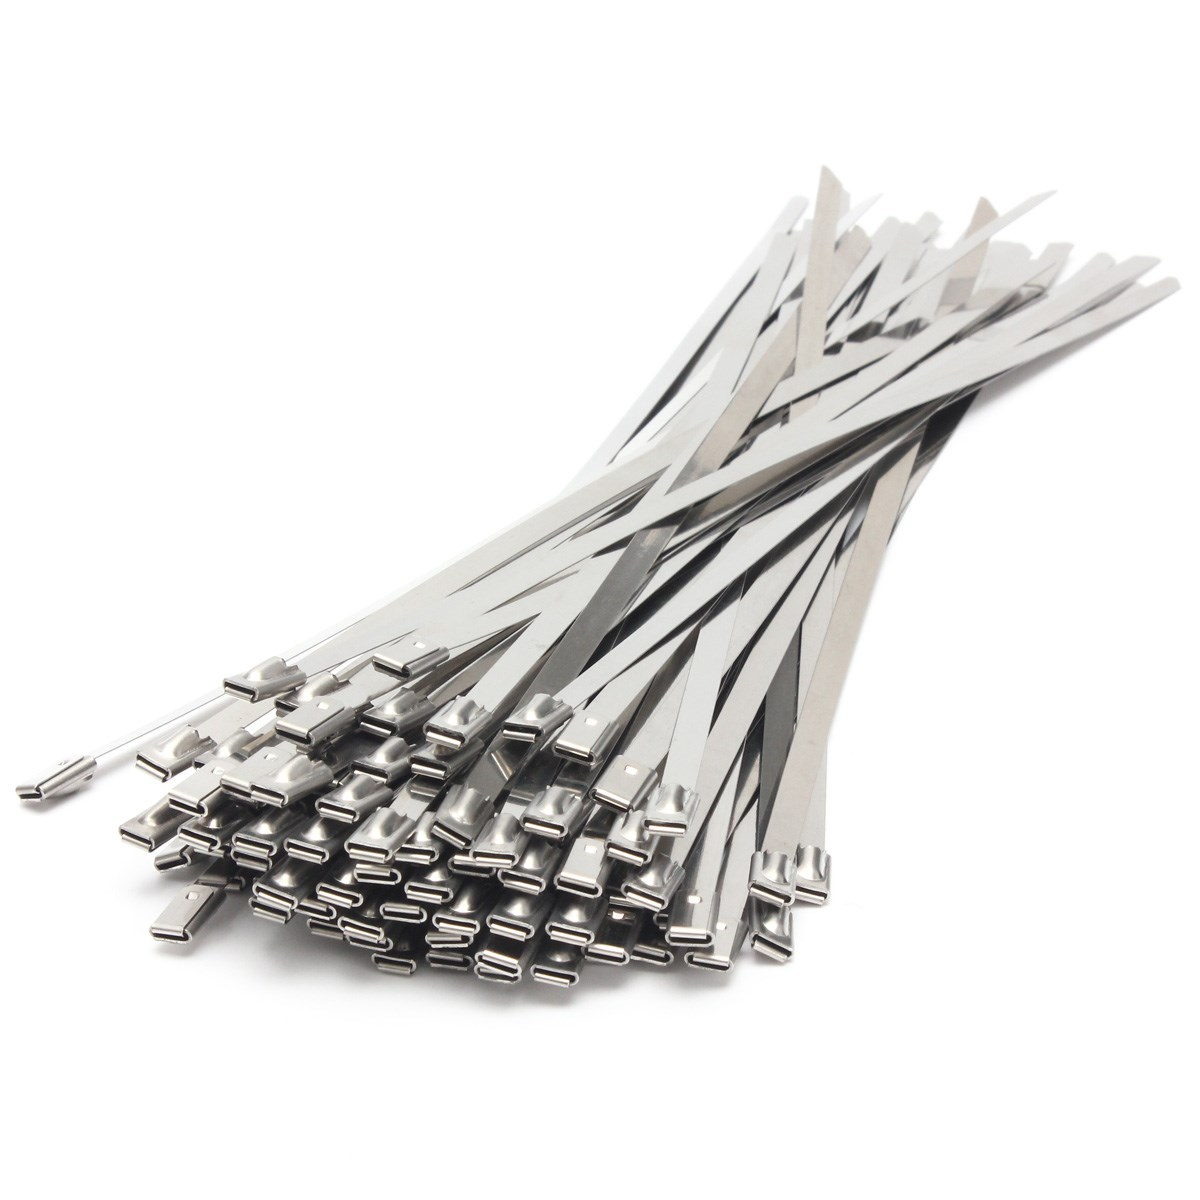 Popular 3m cable ties buy cheap 3m cable ties lots from china 3m cable - Chrome Cable Wrap